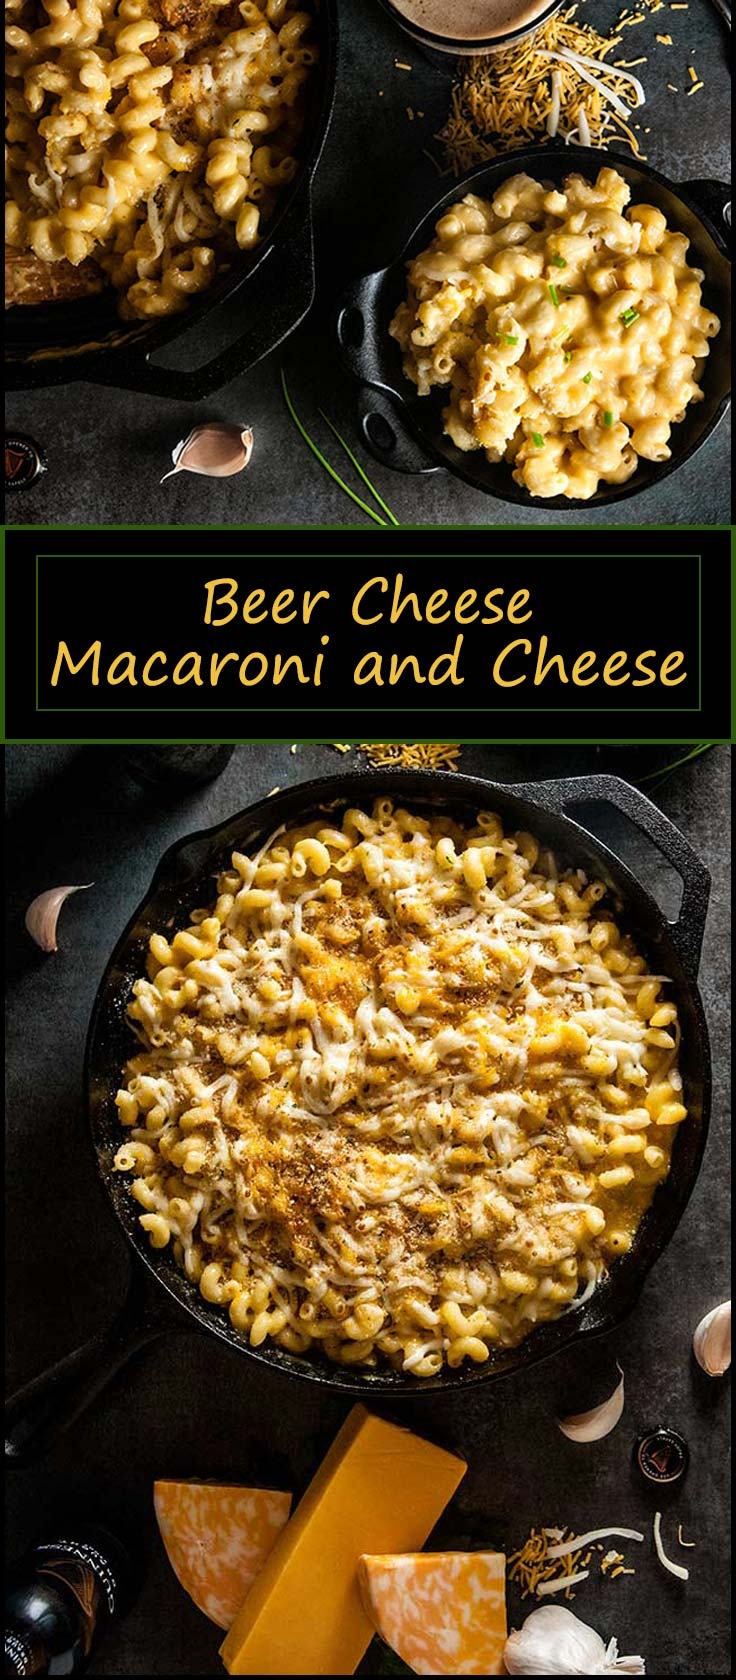 This Beer Cheese Macaroni and Cheese with Guinness beer cheese recipe makes a quick comforting dinner for St. Patrick's Day from www.seasonedsprinkles.com